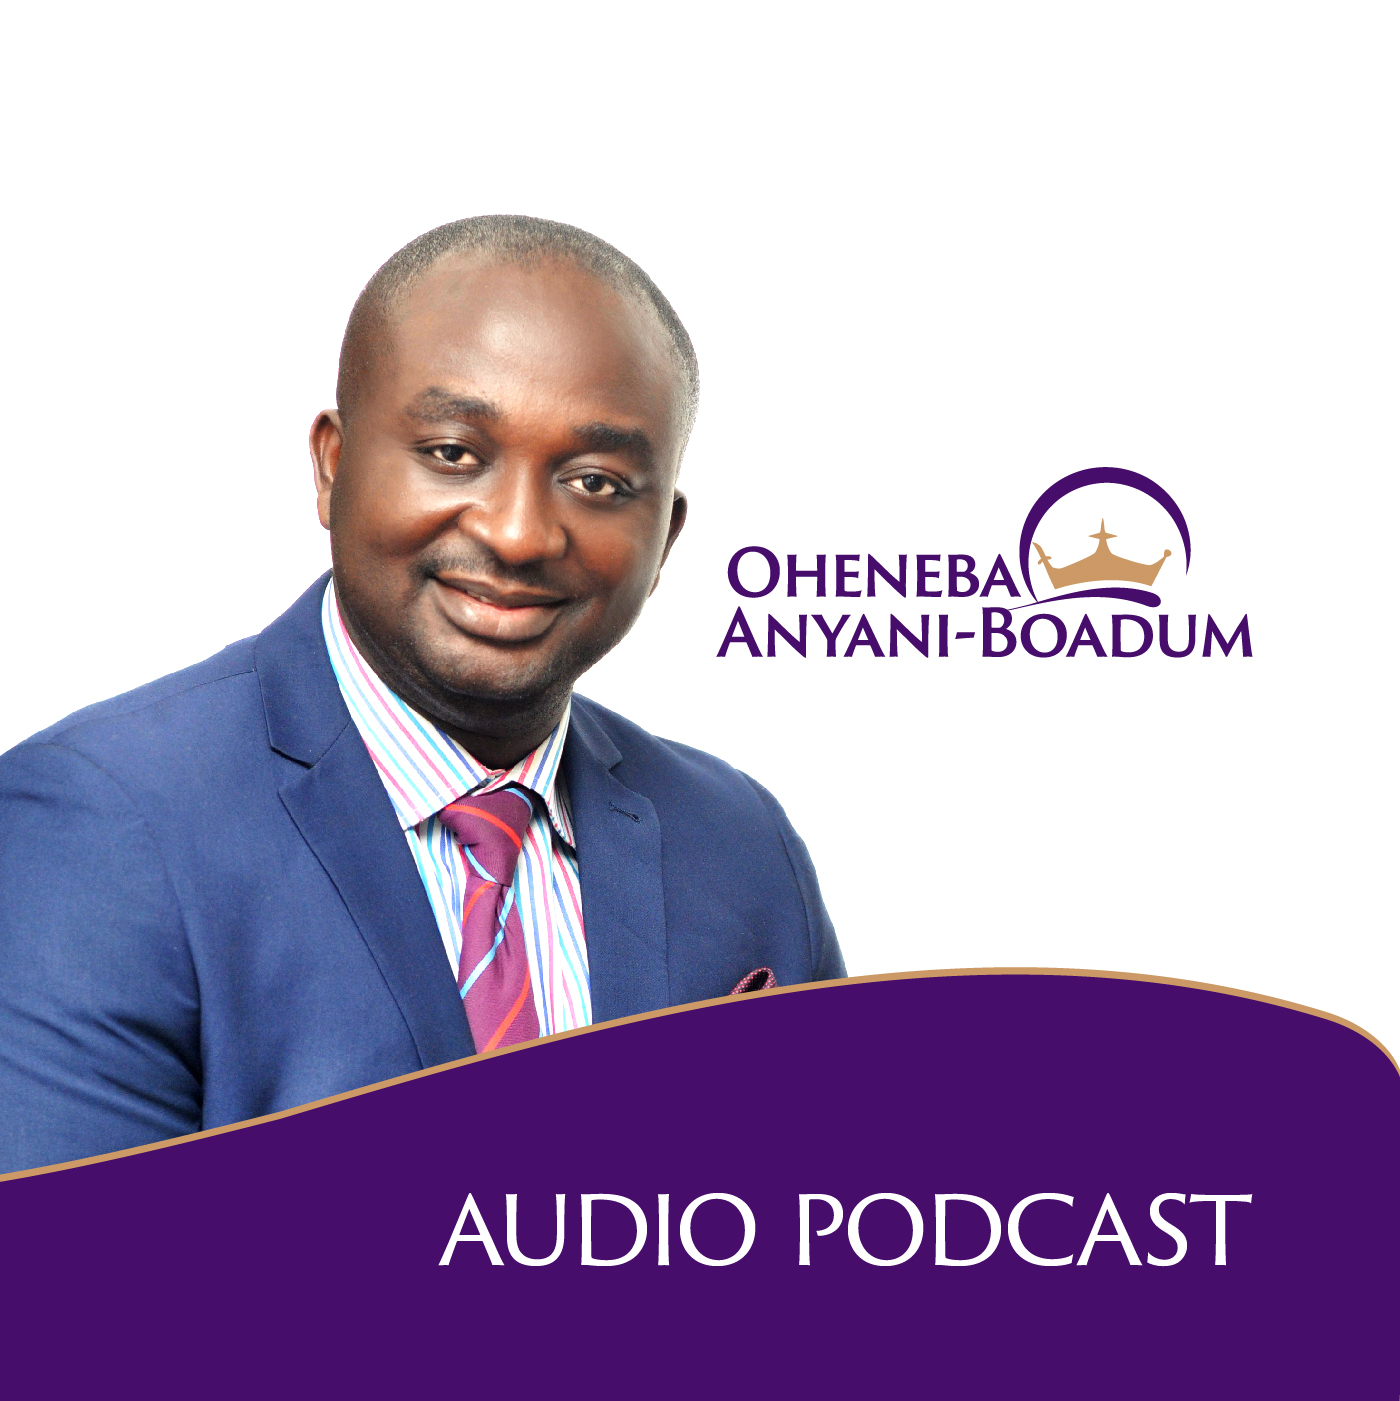 Oheneba Anyani-Boadum's Audio Podcast